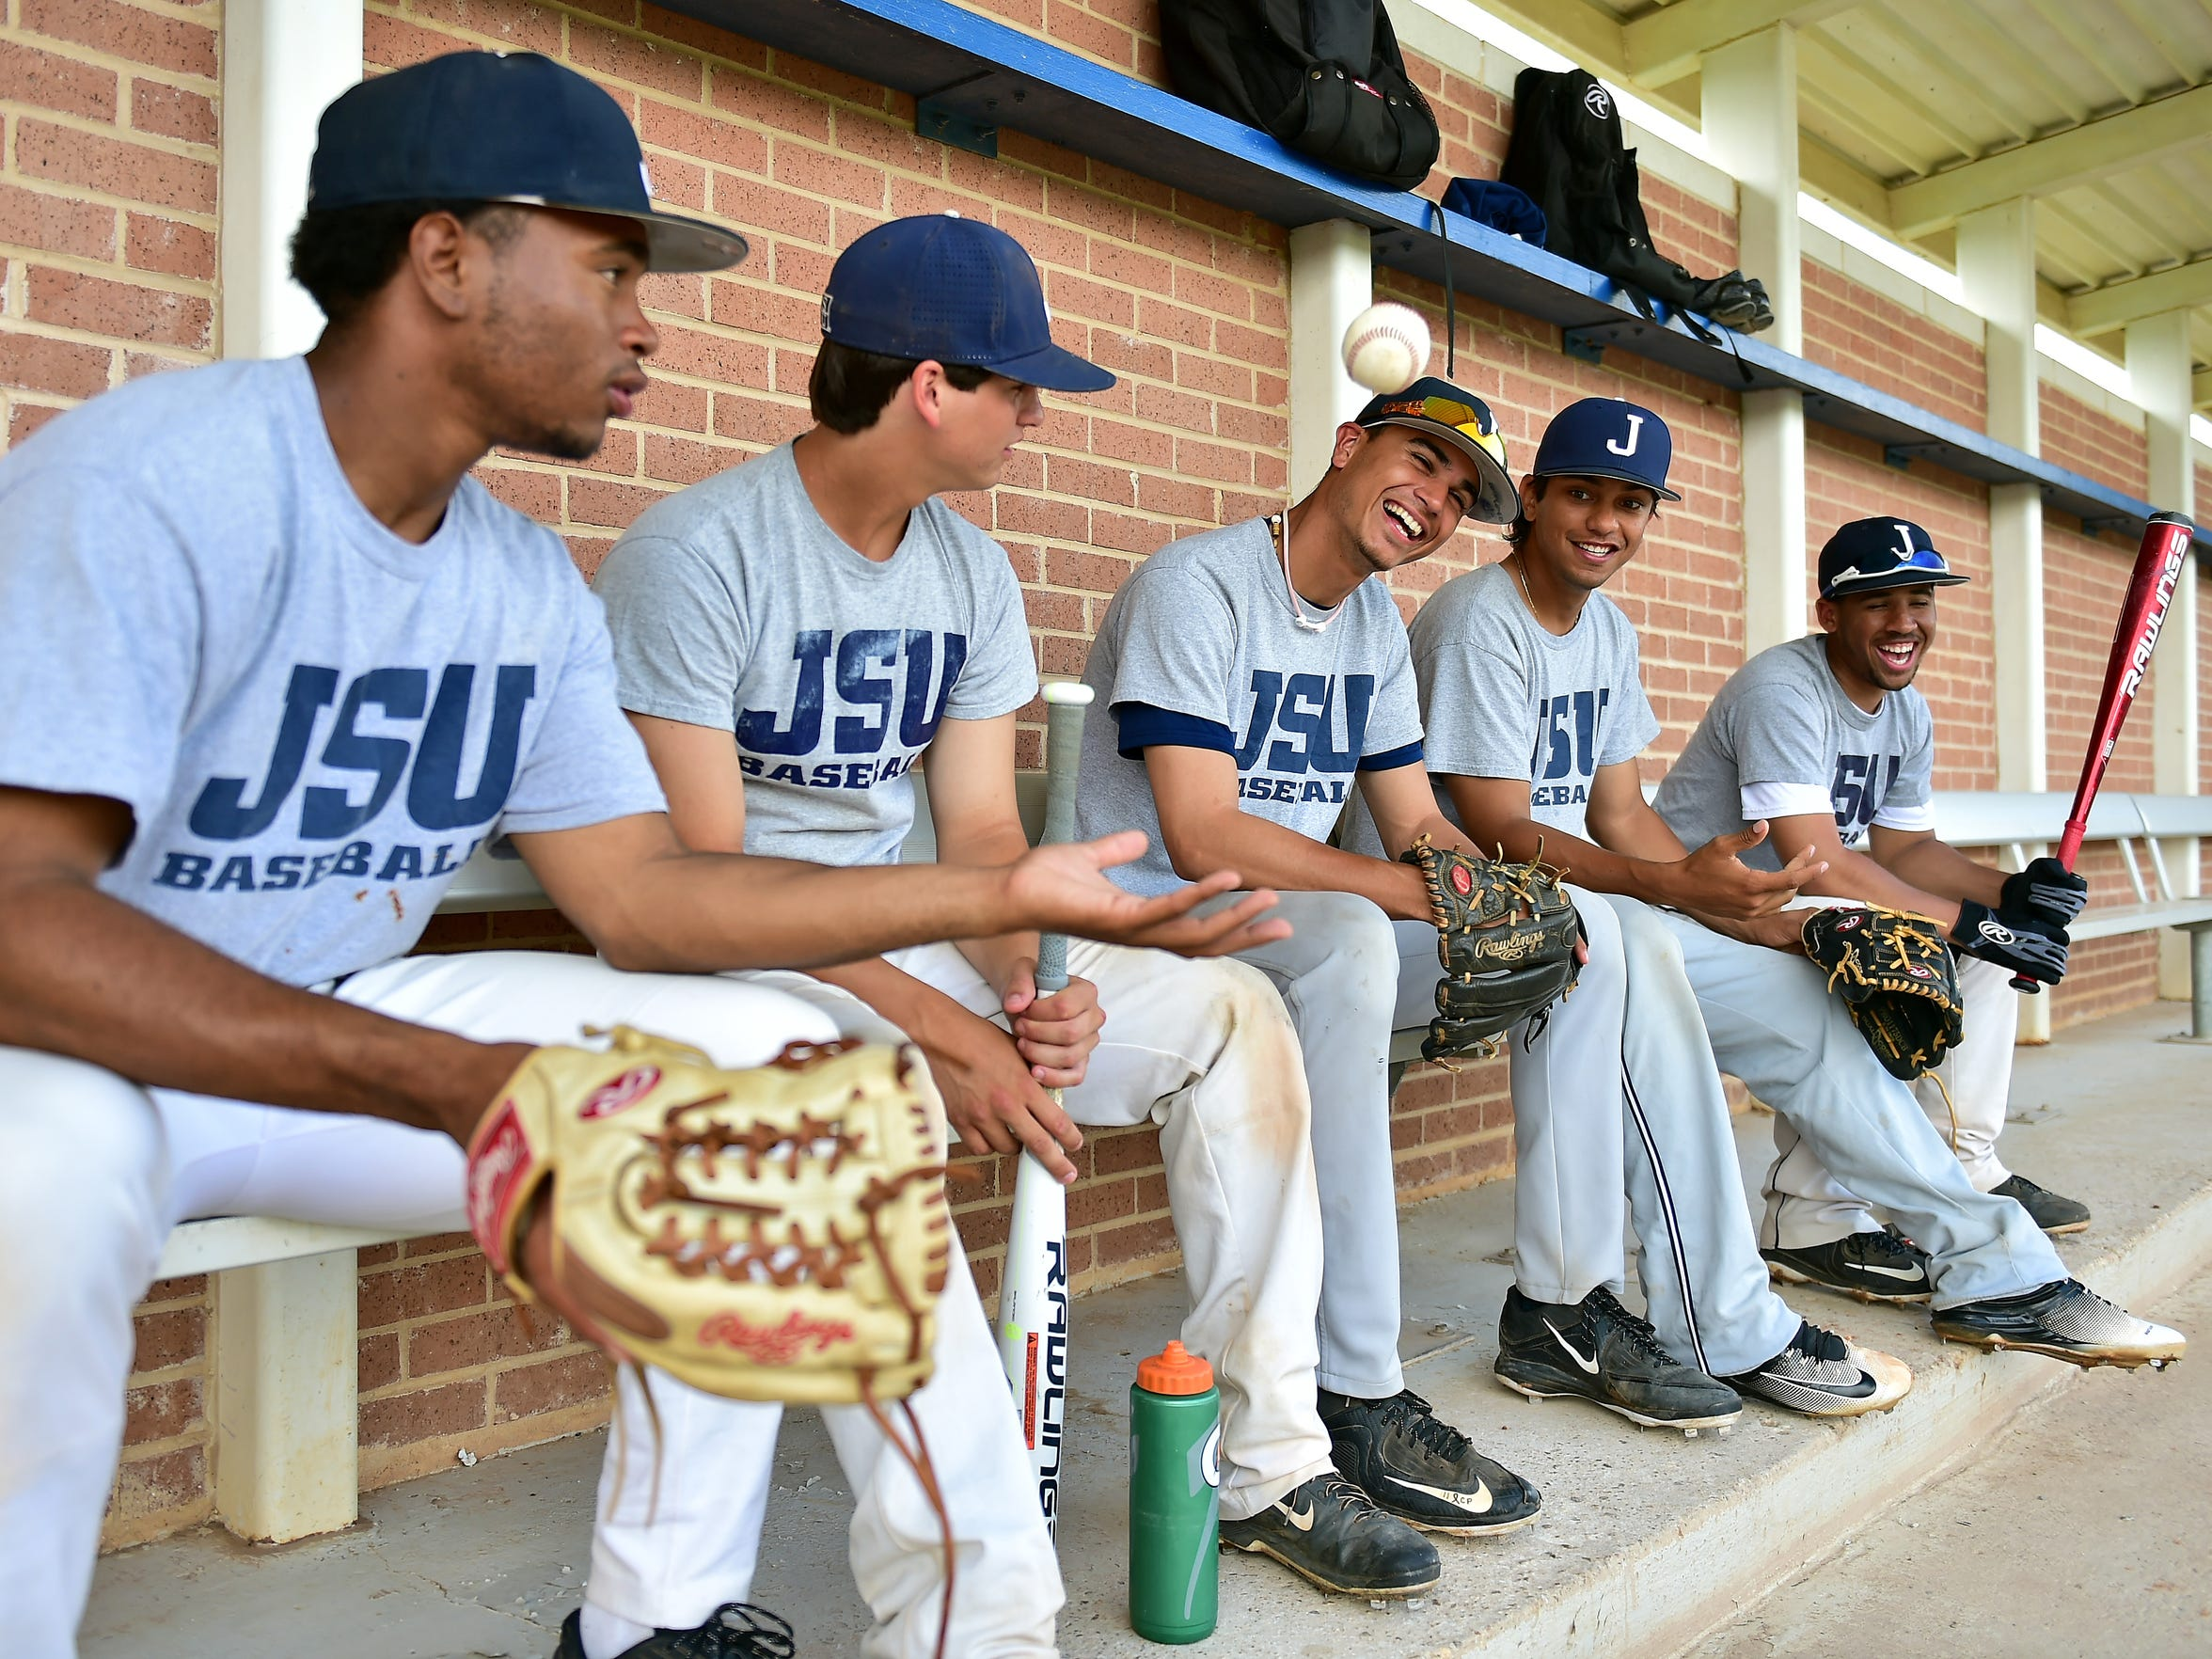 Jackson State baseball players Jashanno Sweeting, from left, Carlos Diaz, Rene Colon, Miguel Yrigoyen and Vincent Anthonia are each at different points in their transition to America.